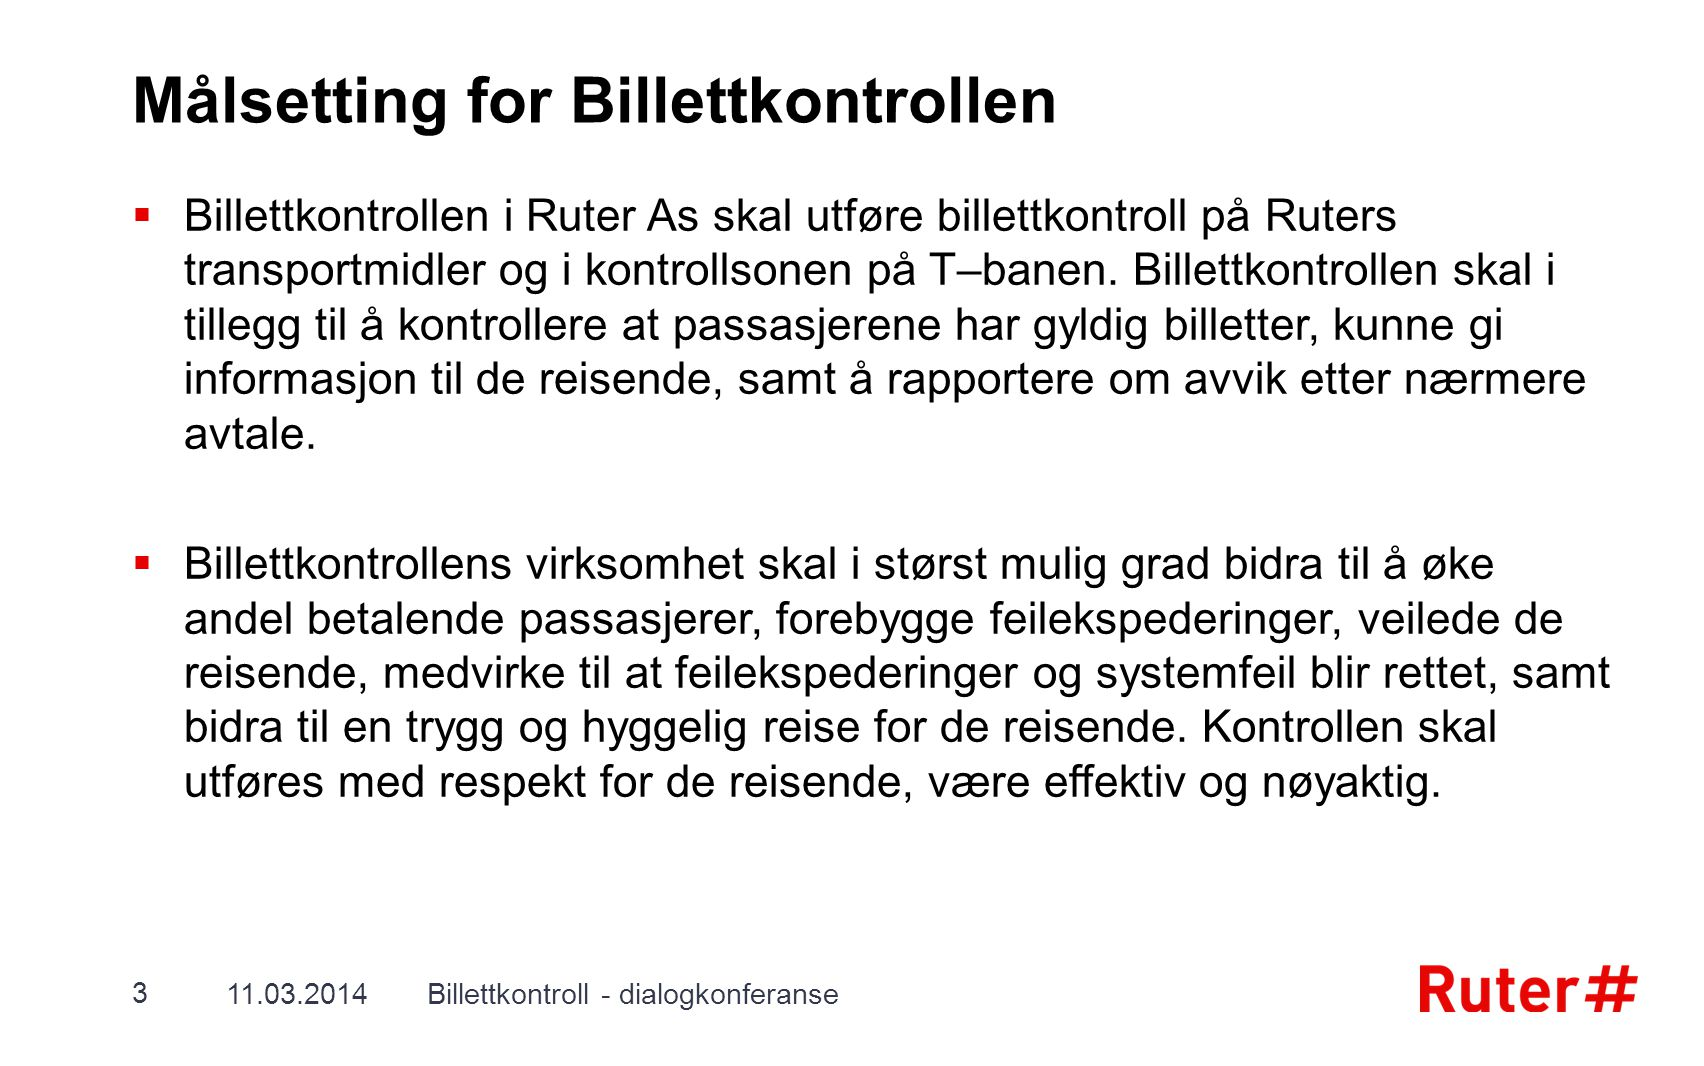 Målsetting for Billettkontrollen